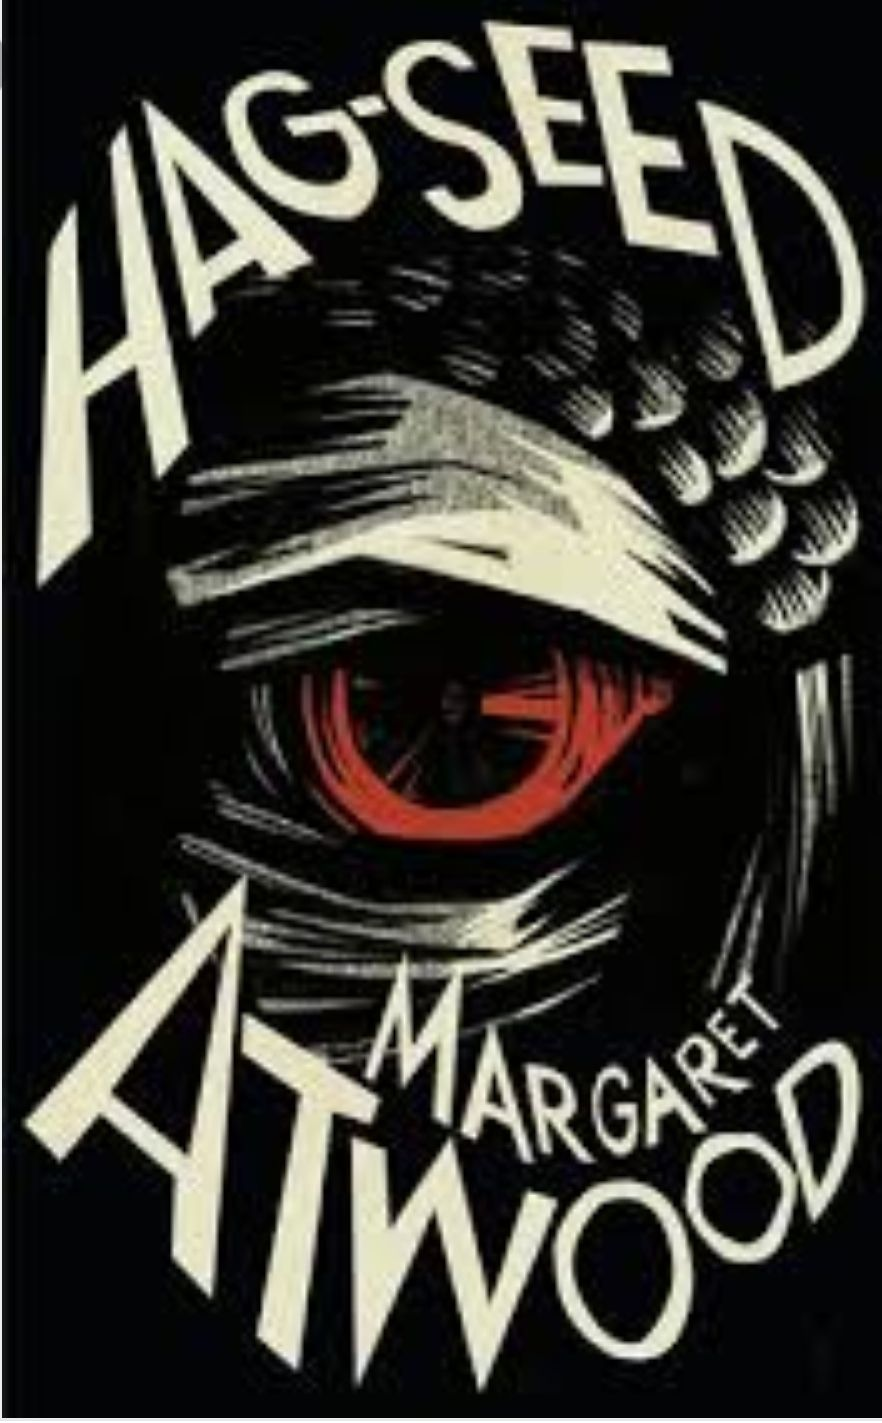 To get excited for @WorldBookNight we're sharing some of our favourite reads! We thoroughly recommend #Hagseed by  @MargaretAtwood 📖 https://t.co/yqmuteEeQe